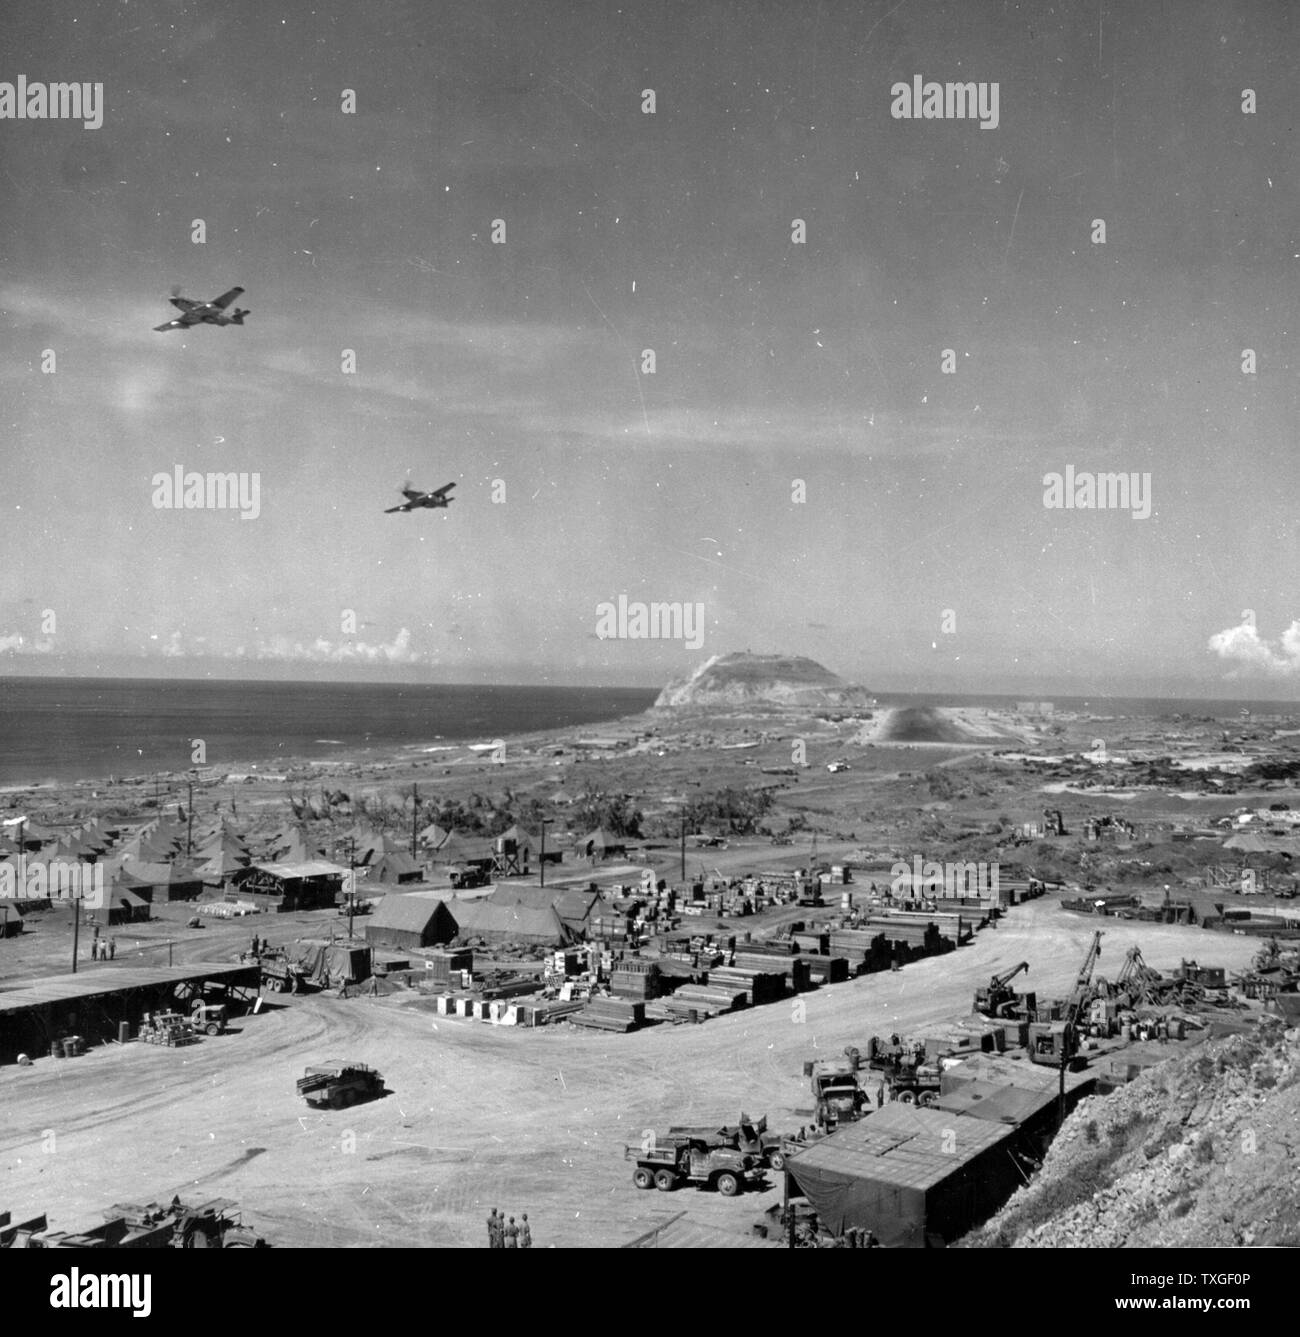 Photograph of the 21st Bomber Command P-51s Flyover in Iwo Jima Bonin Islands, Japan. Dated 1945 - Stock Image